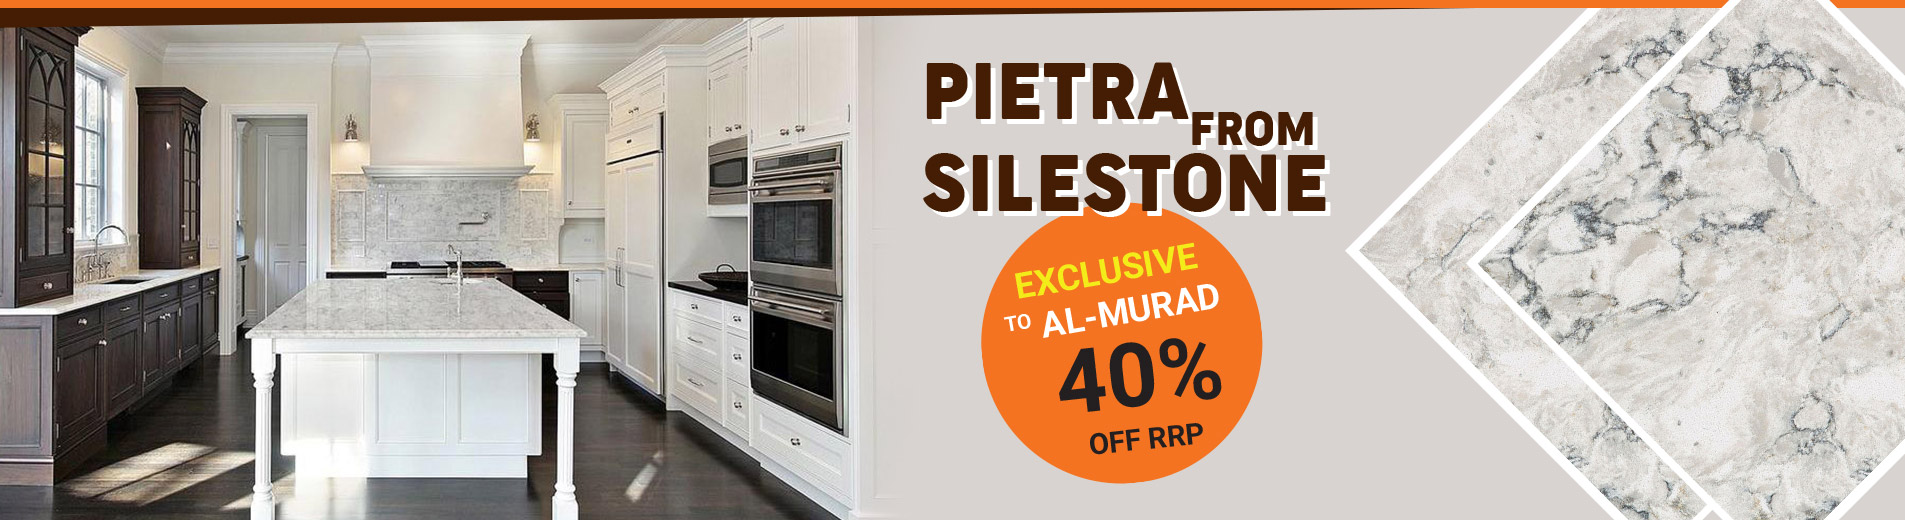 Exclusive to al-murad granite Pietra From Silestone  40% off RRP